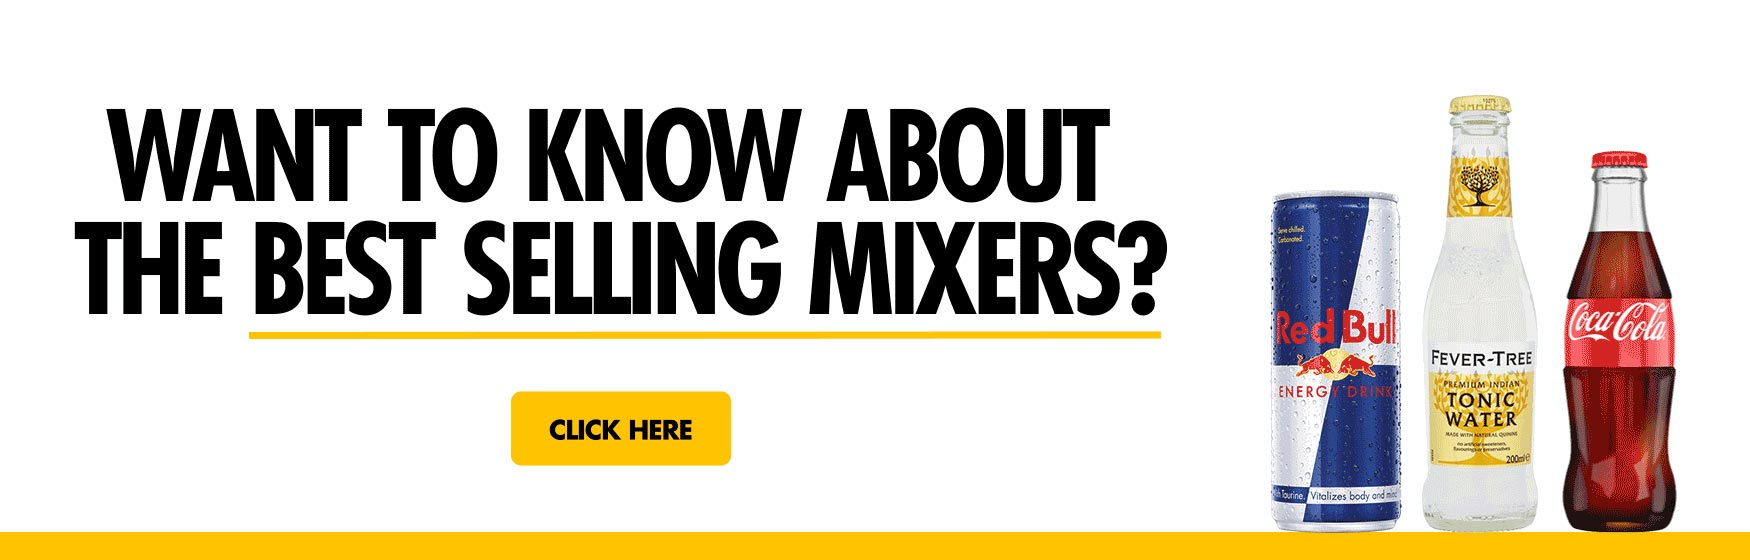 Want to know about the best selling mixers?